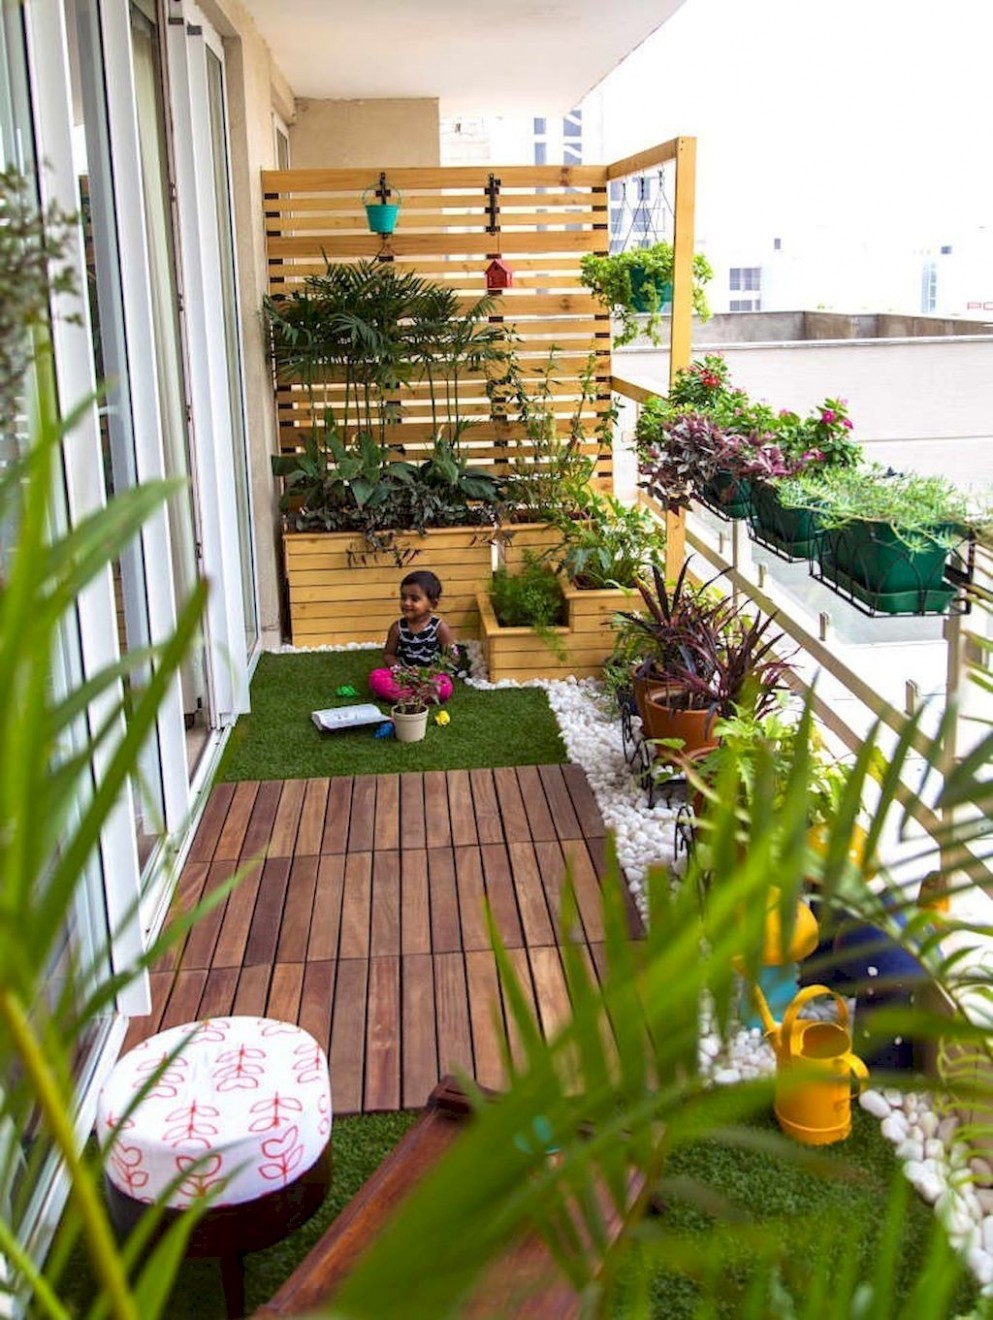 12 Apartment Balcony Decorating Ideas on A Budget - decorapartment  - Apartment Balcony Ideas On A Budget